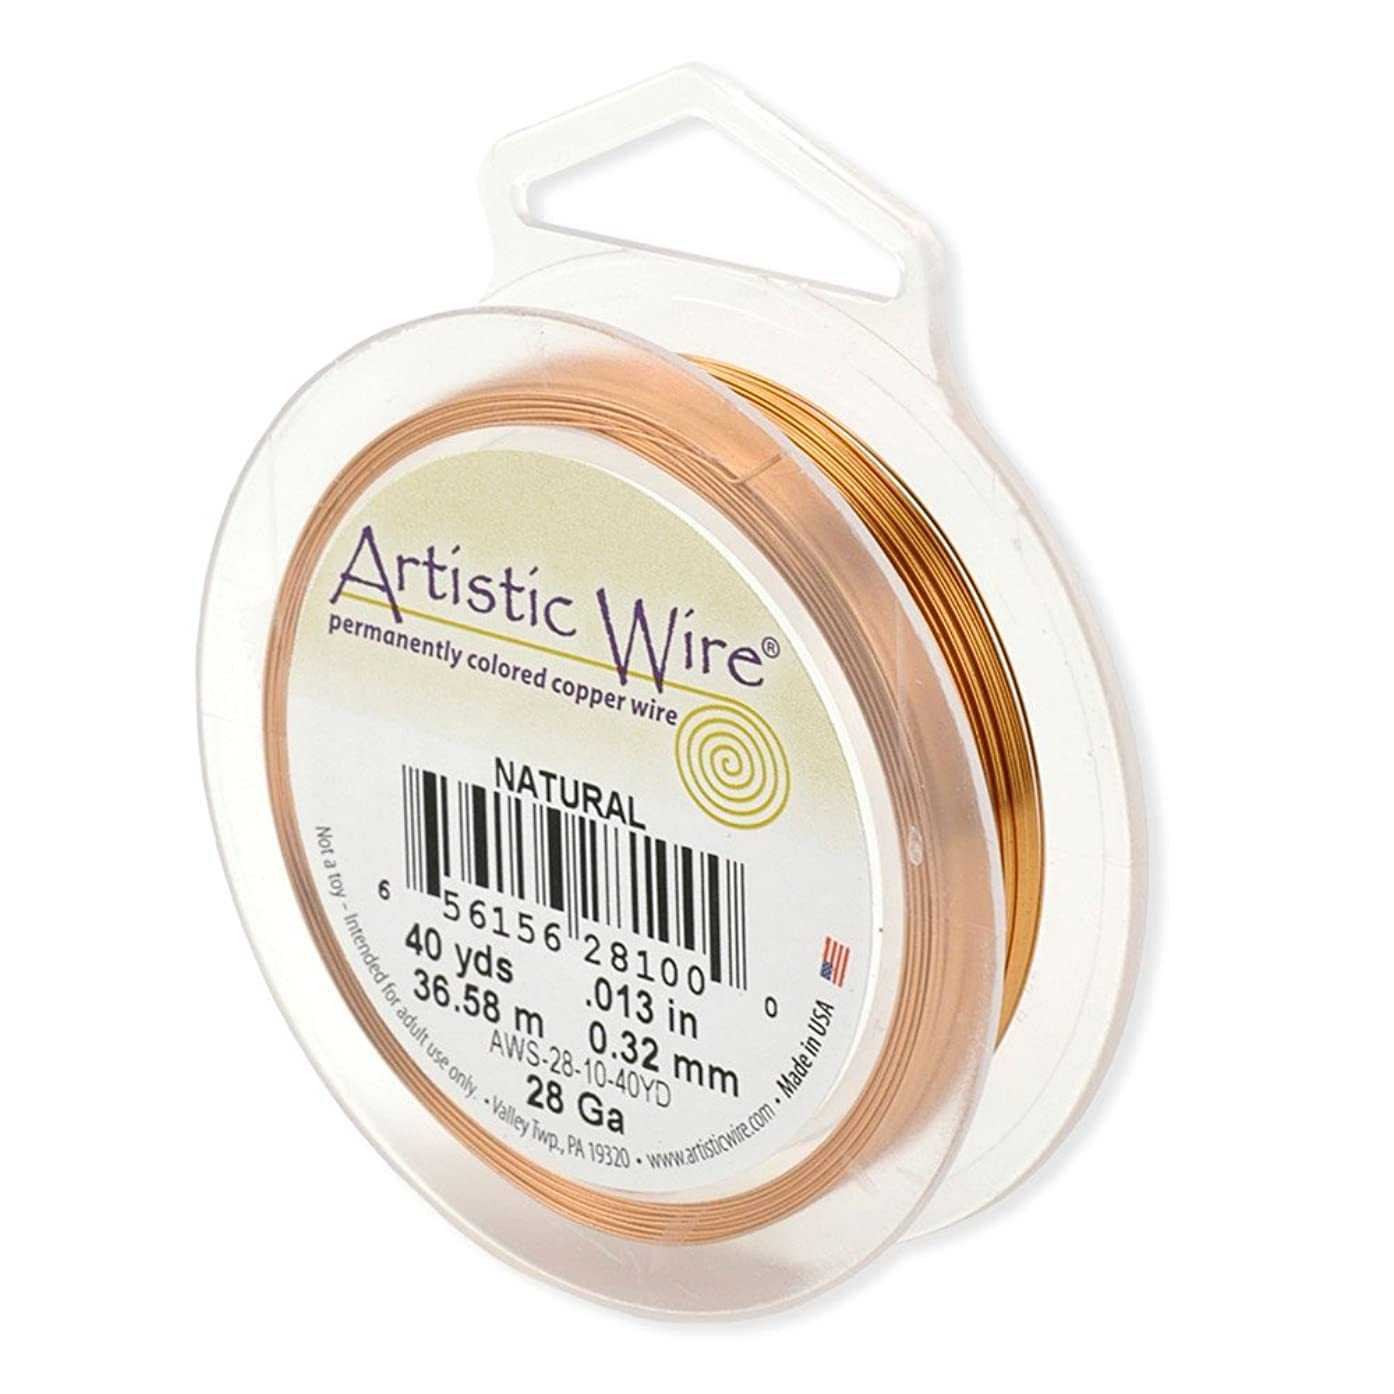 Artistic Wire 32-Gauge Natural Wire, 100-Yards